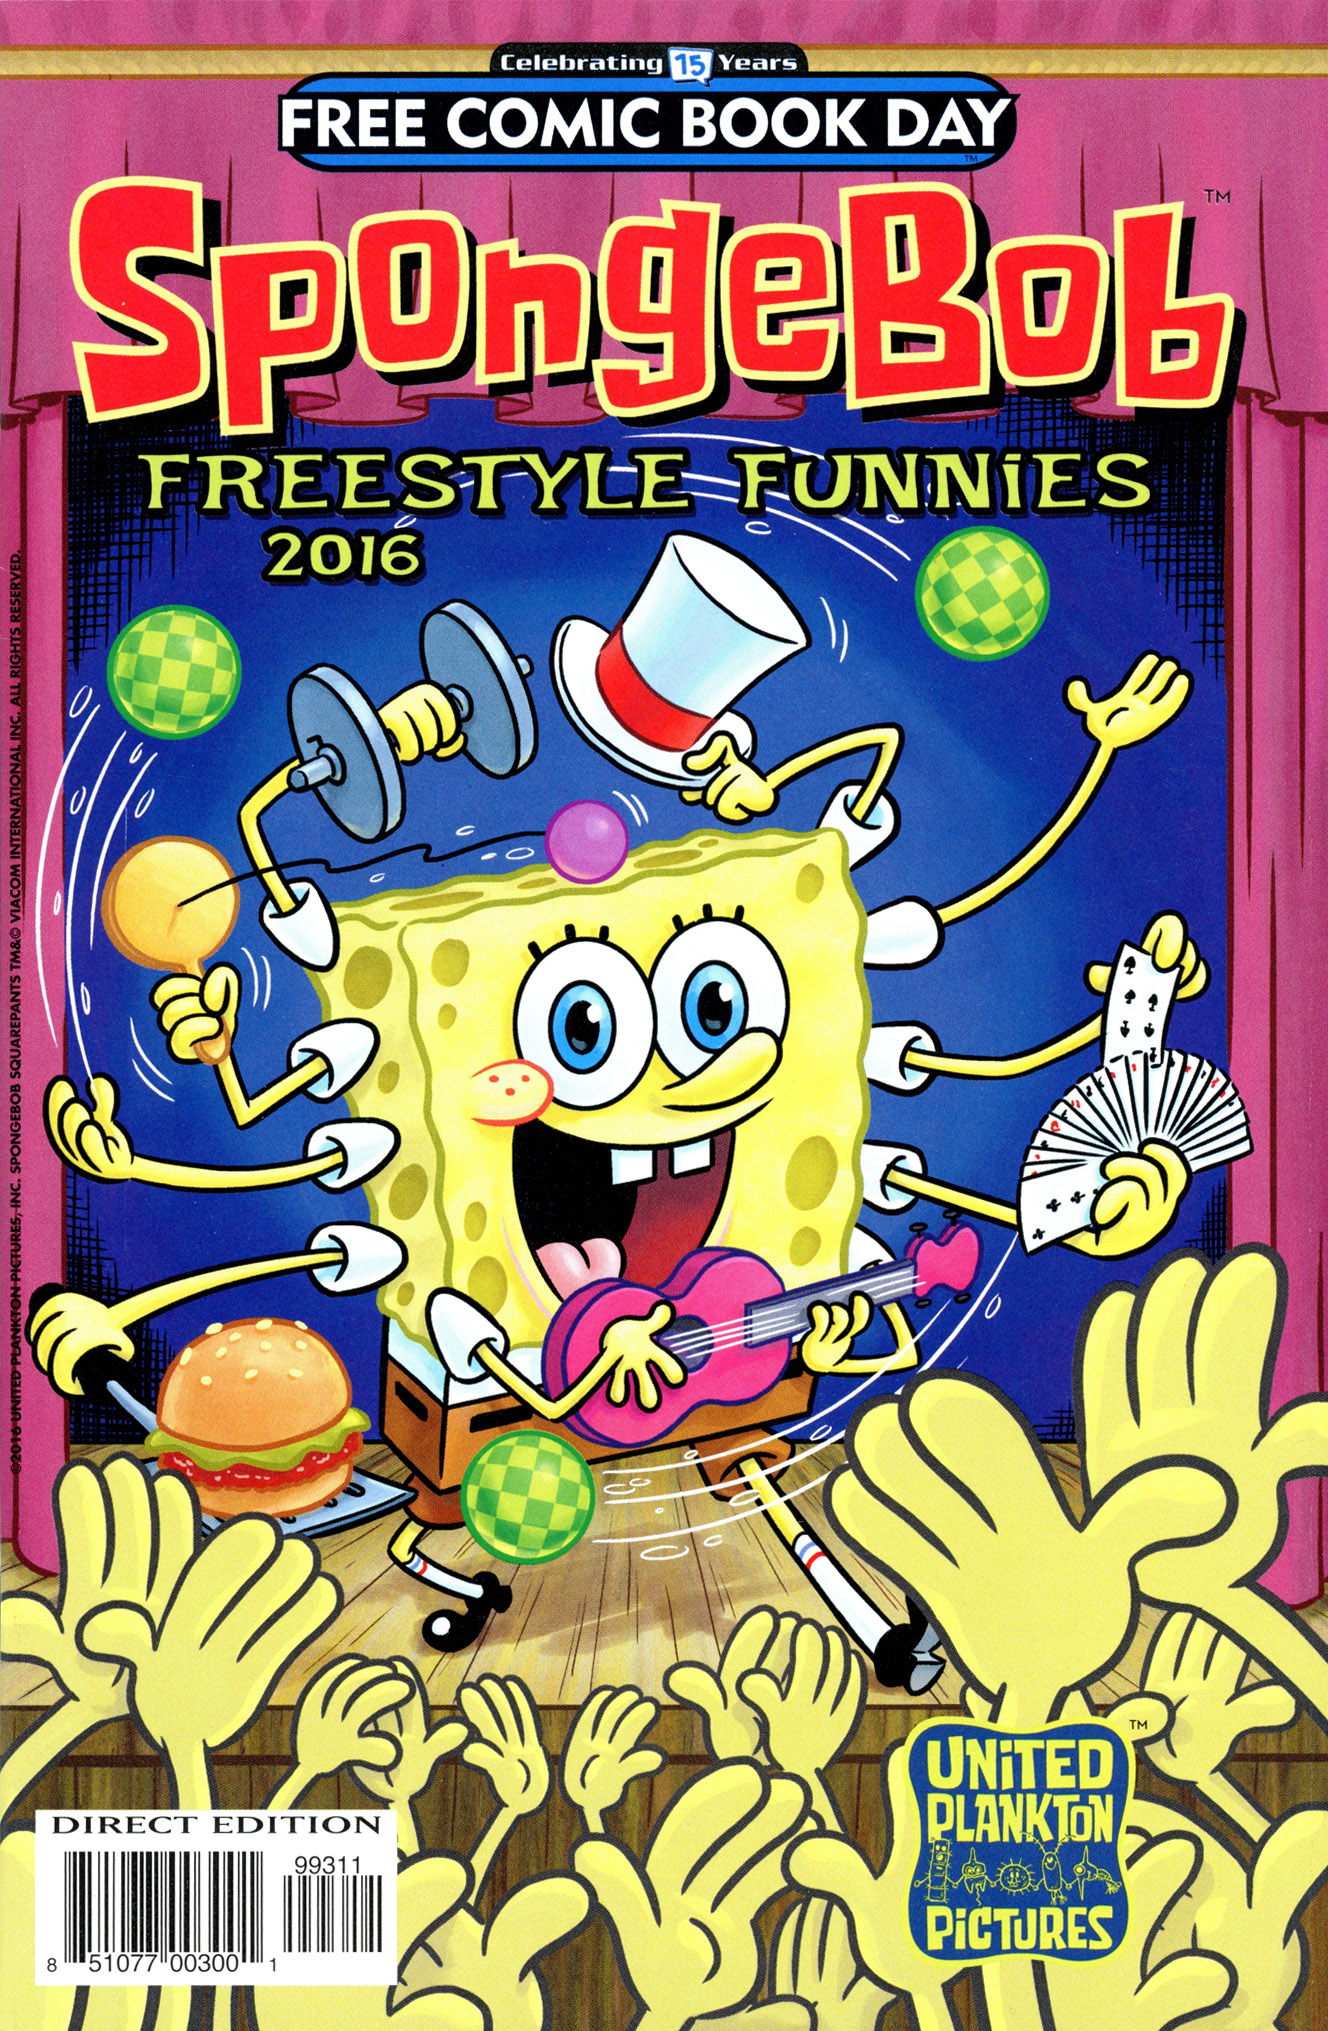 free comic book day 2016 spongebob freestyle funnies read free